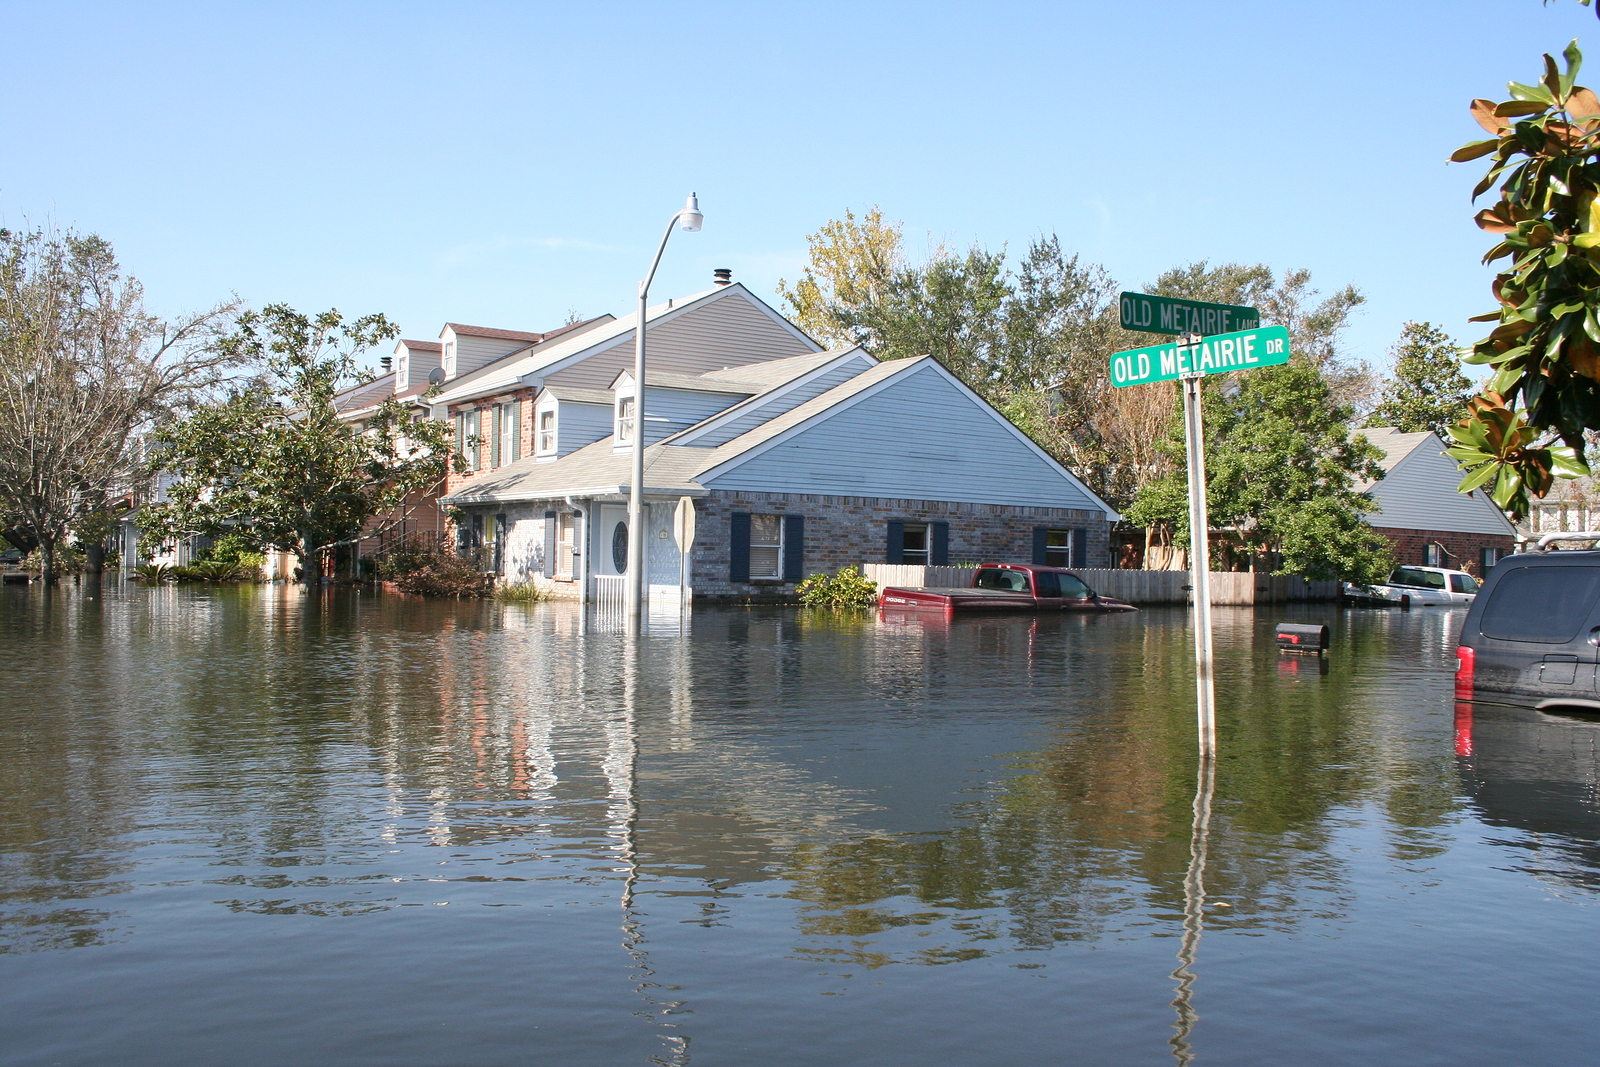 Solar Backup and Safety Lighting Solutions can help during disasters like flooding.